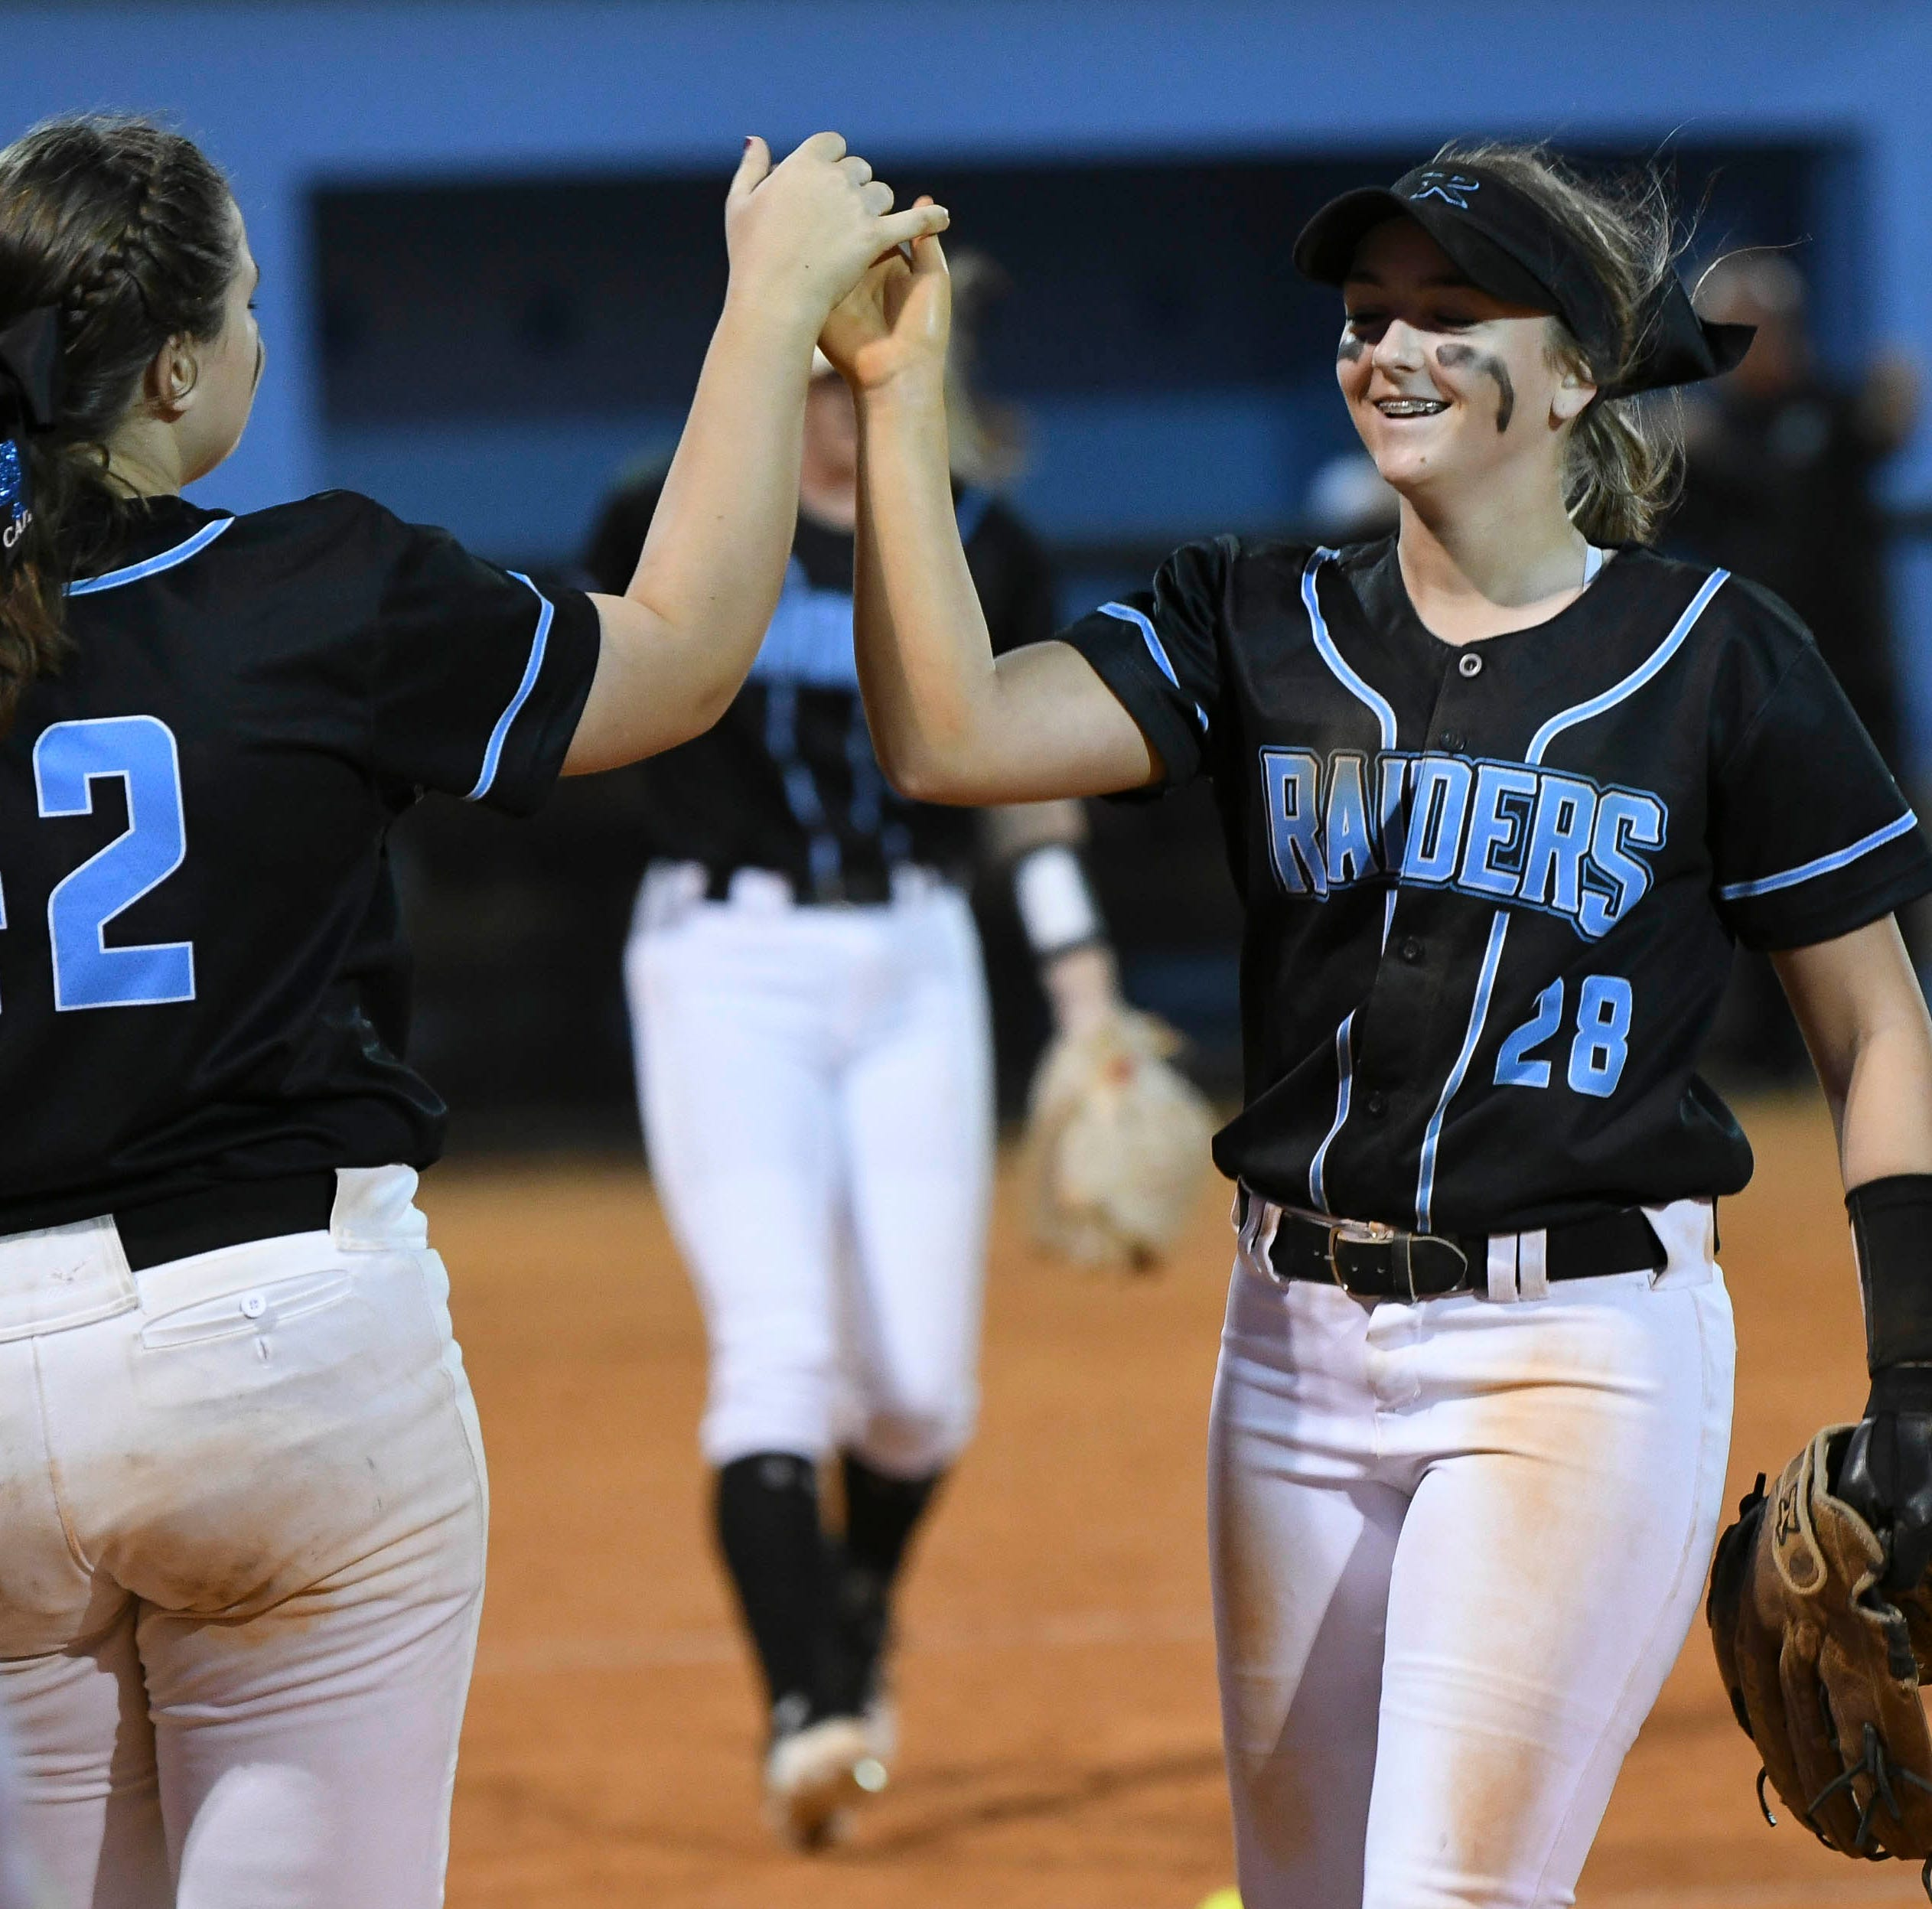 Rockledge softball on to 6A state tournament, 5 baseball teams play Saturday